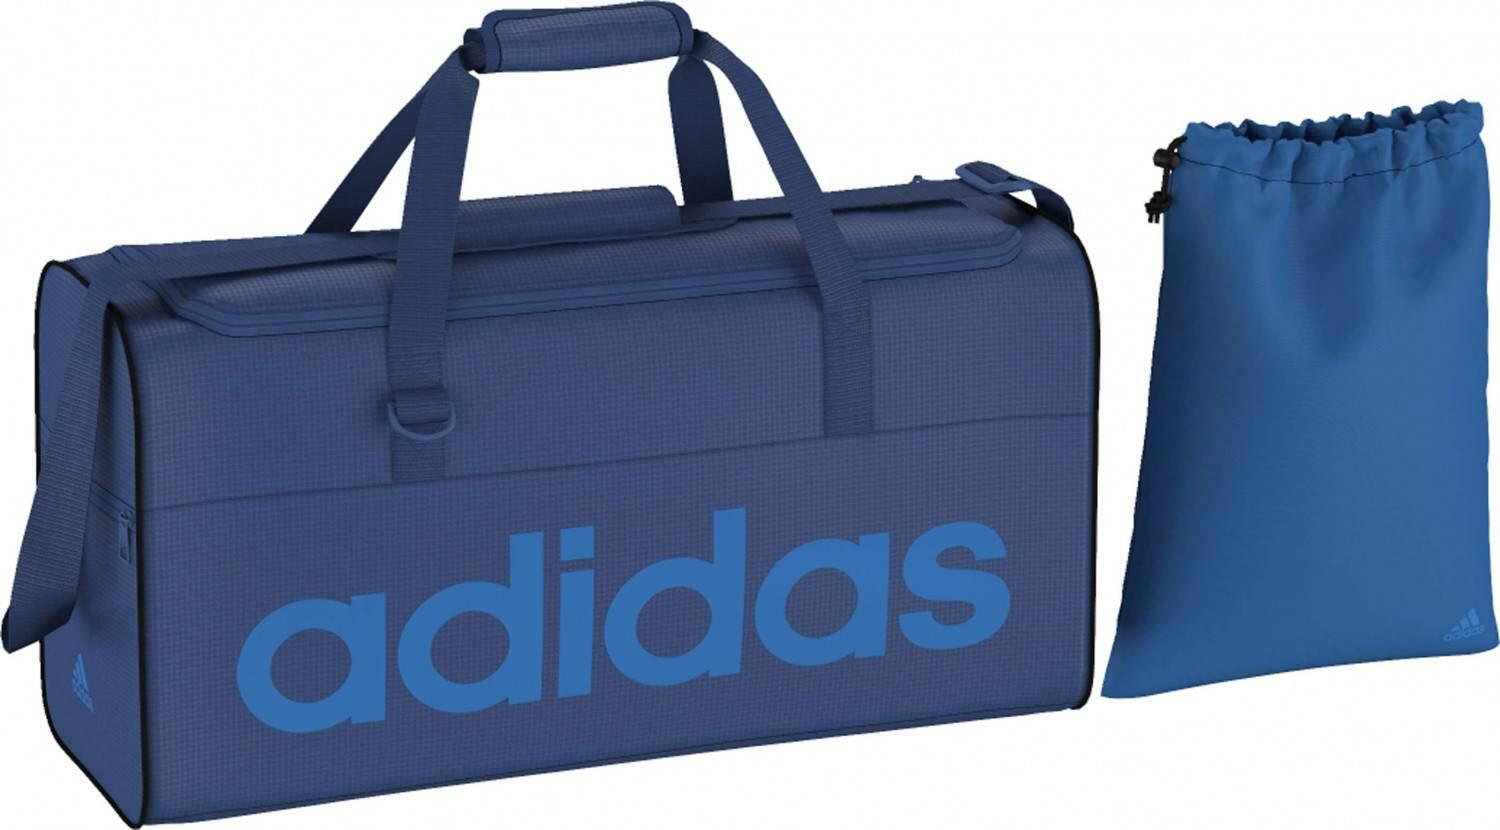 adidas-linear-performance-teambag-m-tasche-farbe-eqt-blue-s16-shock-blue-s16-shock-blue-s16-